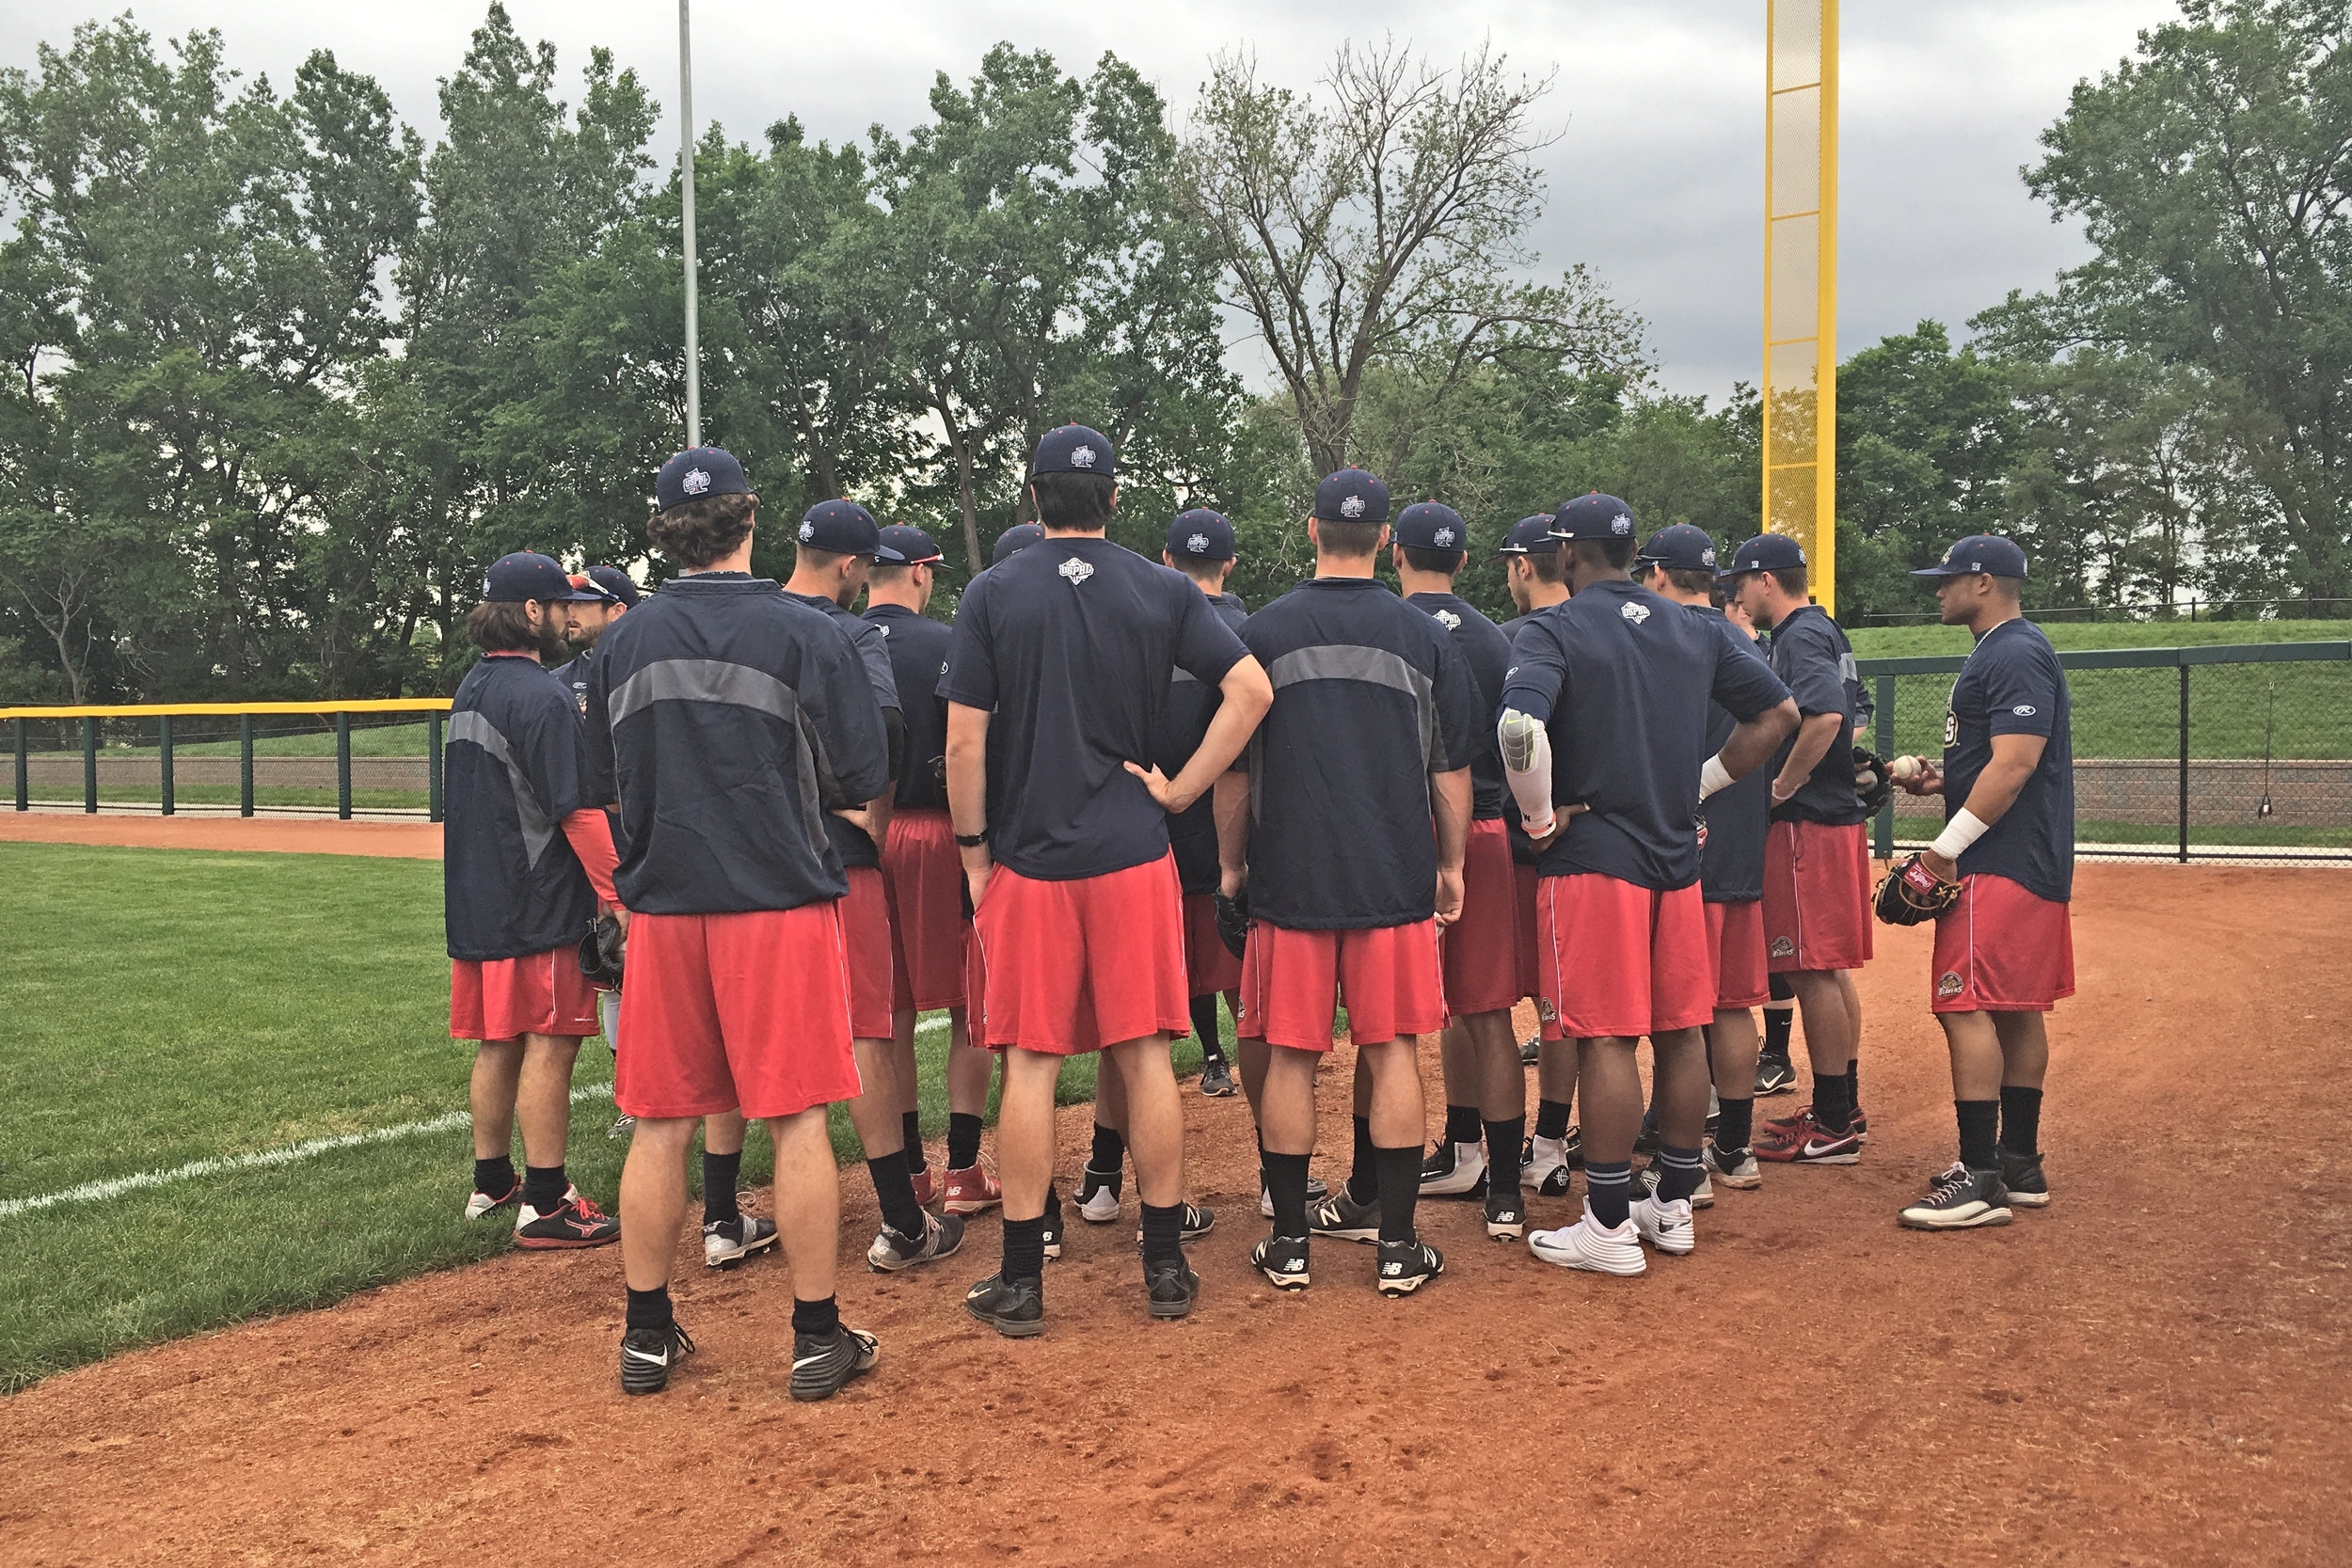 Team - ⚾️ Custom Throwing Distances for up to 10 players⚾️ Full access to Online Program⚾️ Updated Coach's Handbook